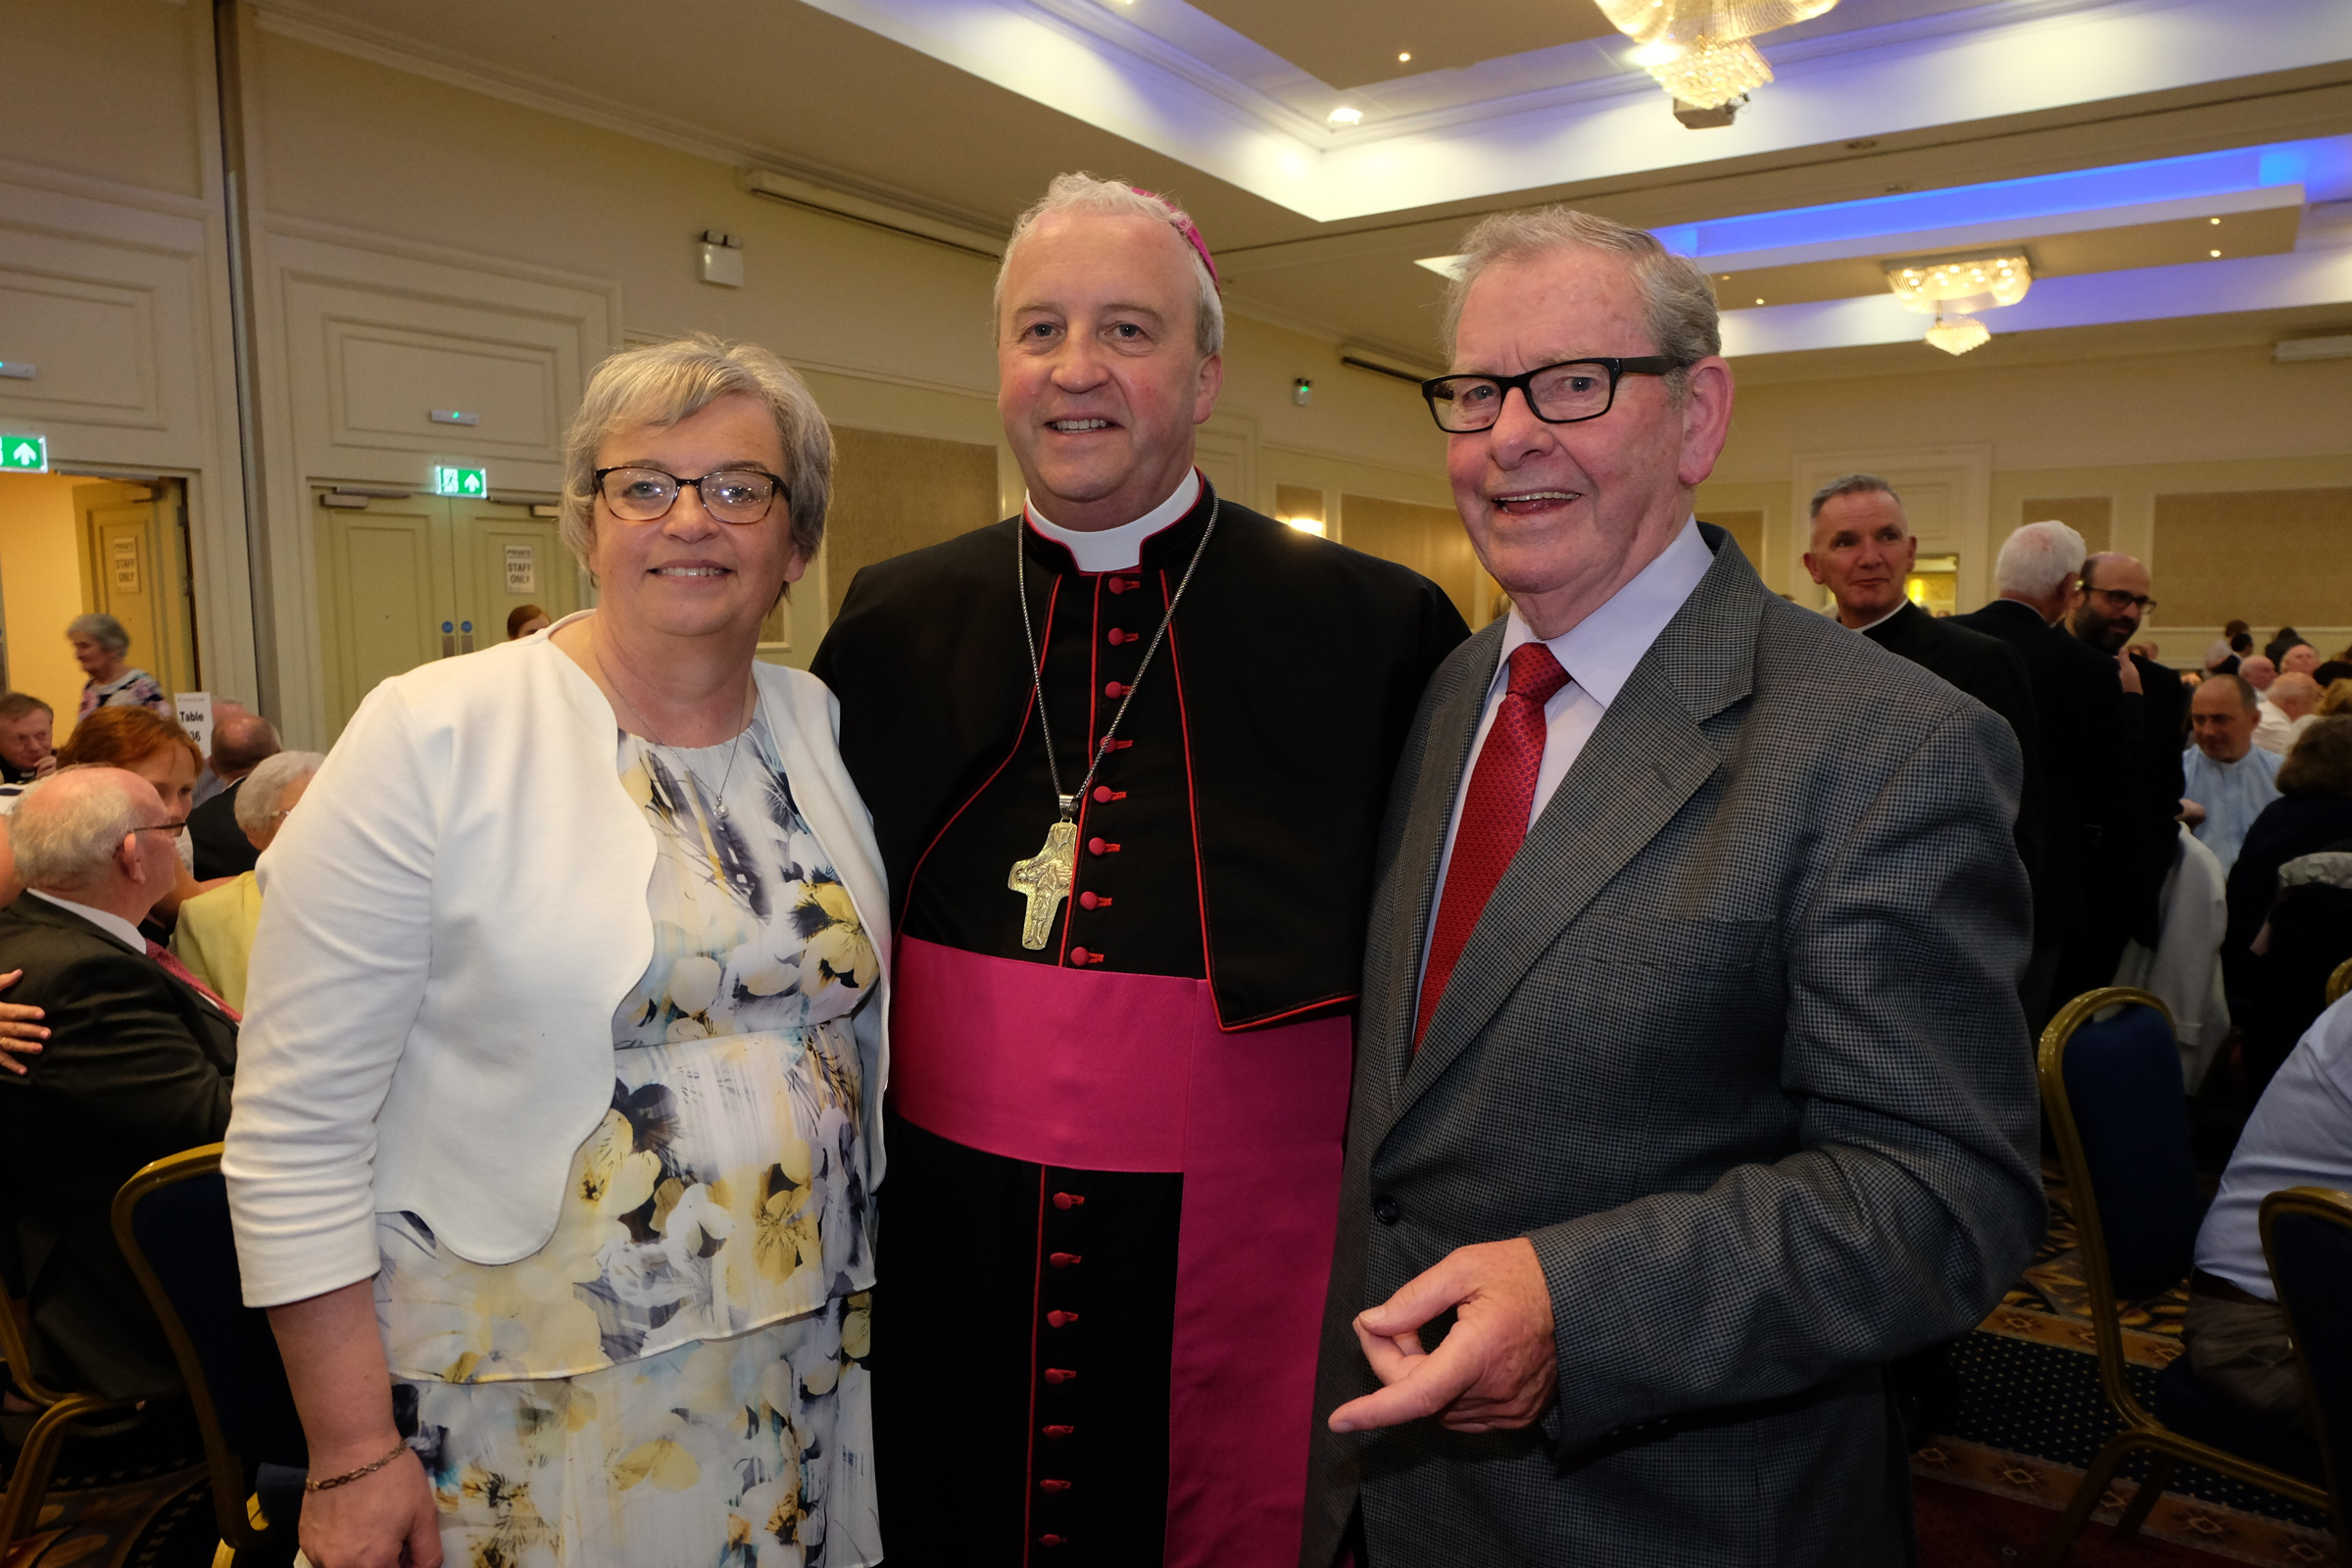 The new Bishop Michael Router, with his sister Breda Murphy, and his godfather Michael Murphy, at a celebration dinner following the Bishop's Ordination